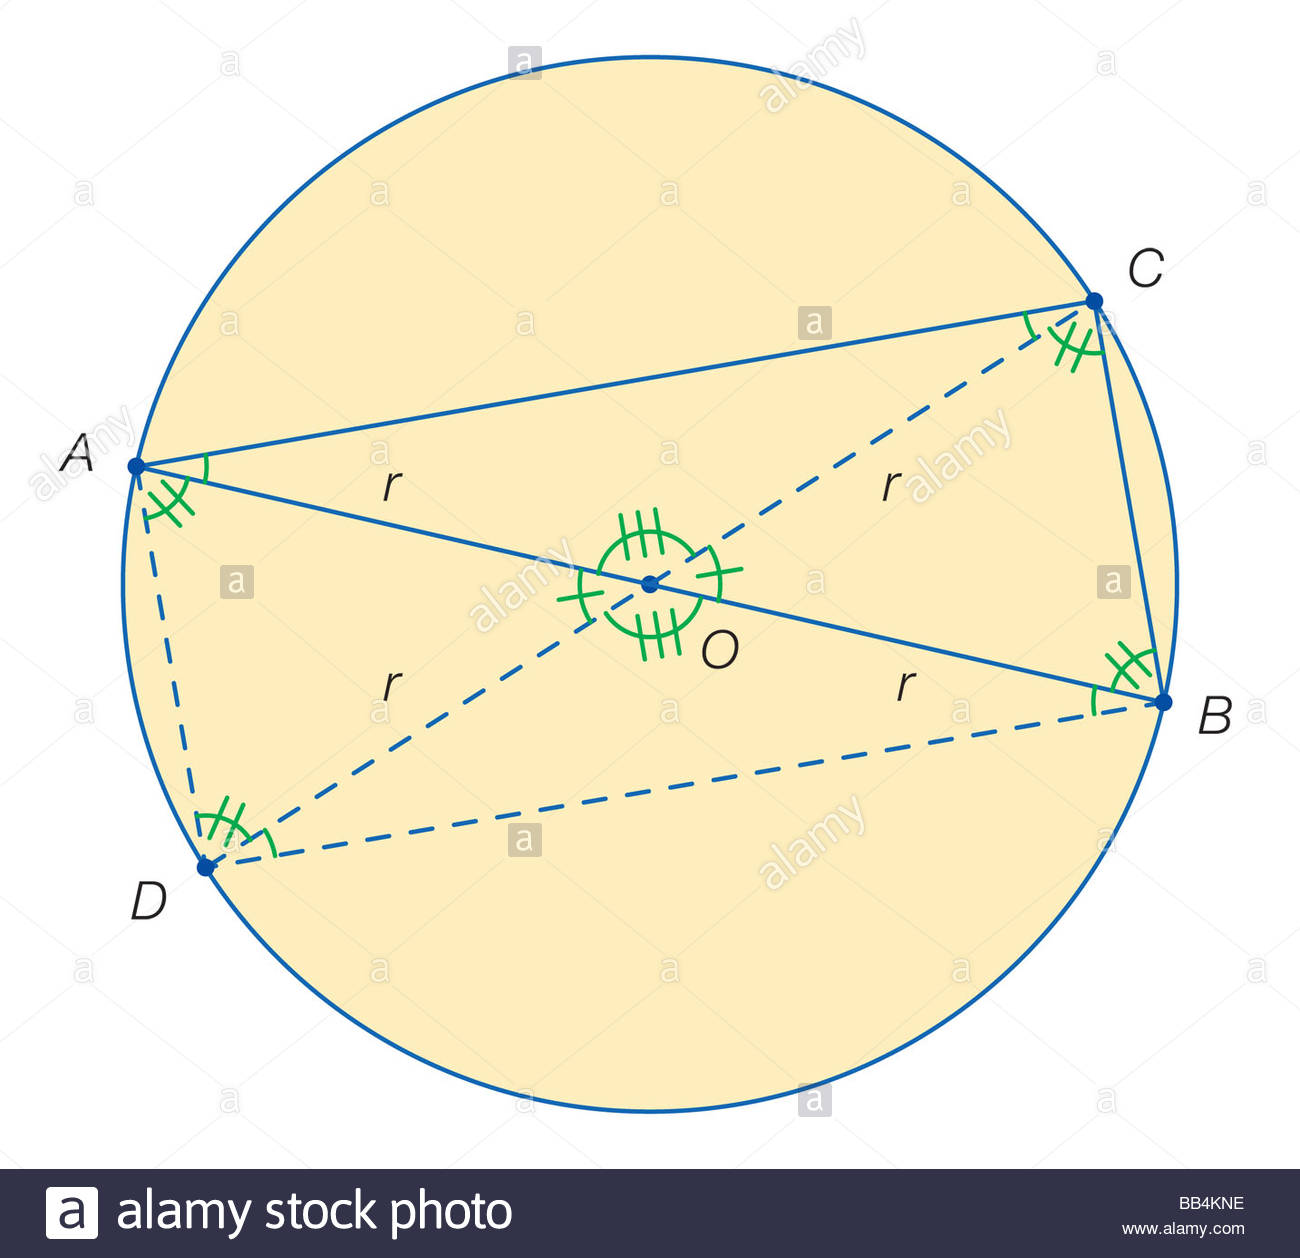 1300x1258 Proposed Drawing Of Thales' Rectangle, A Proof That Any Angle